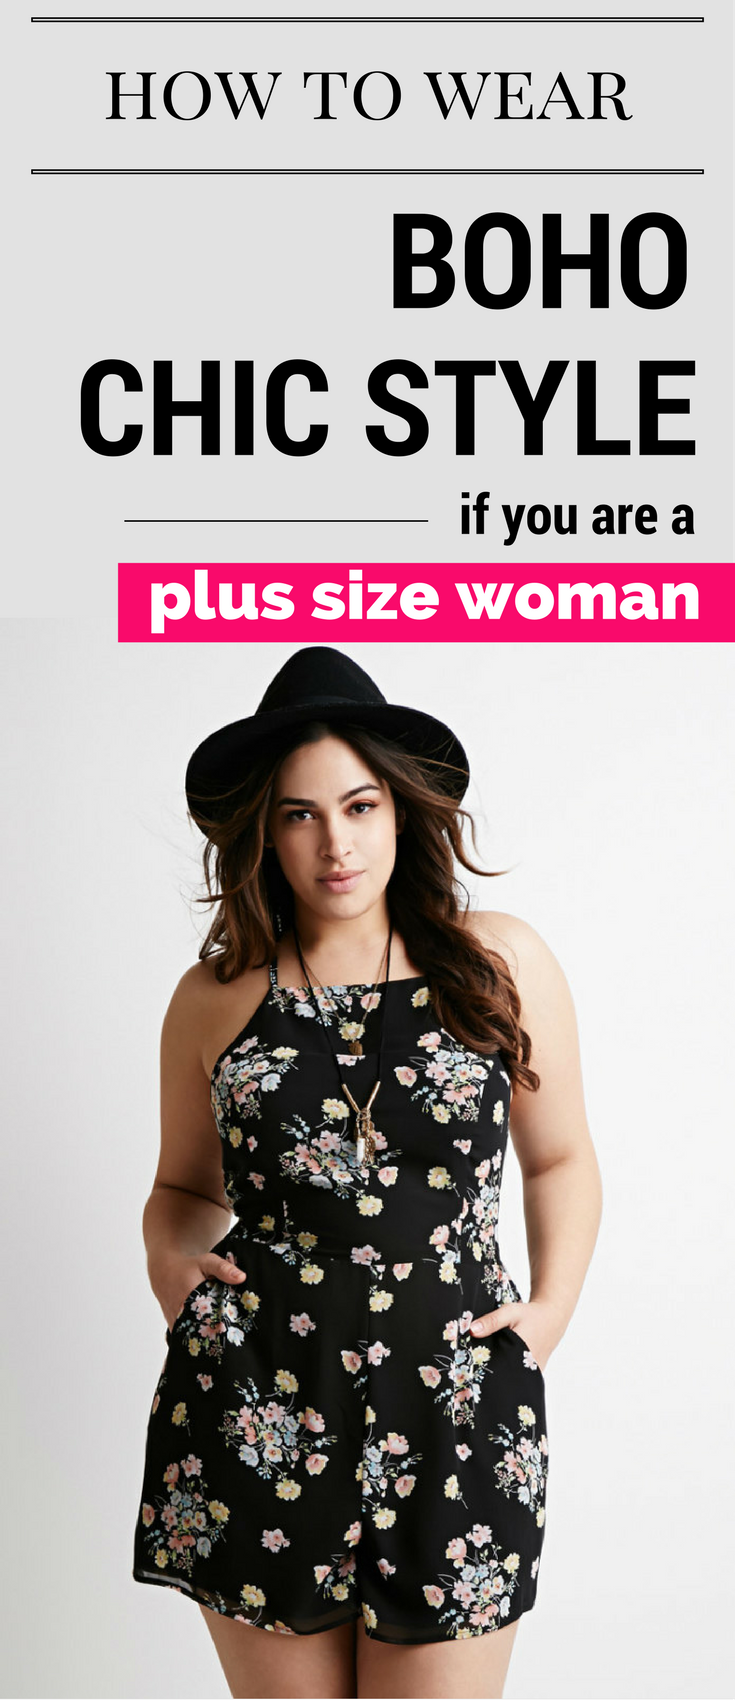 1eb7779e086df How To Wear Boho Chic Style If You Are A Plus Size Woman